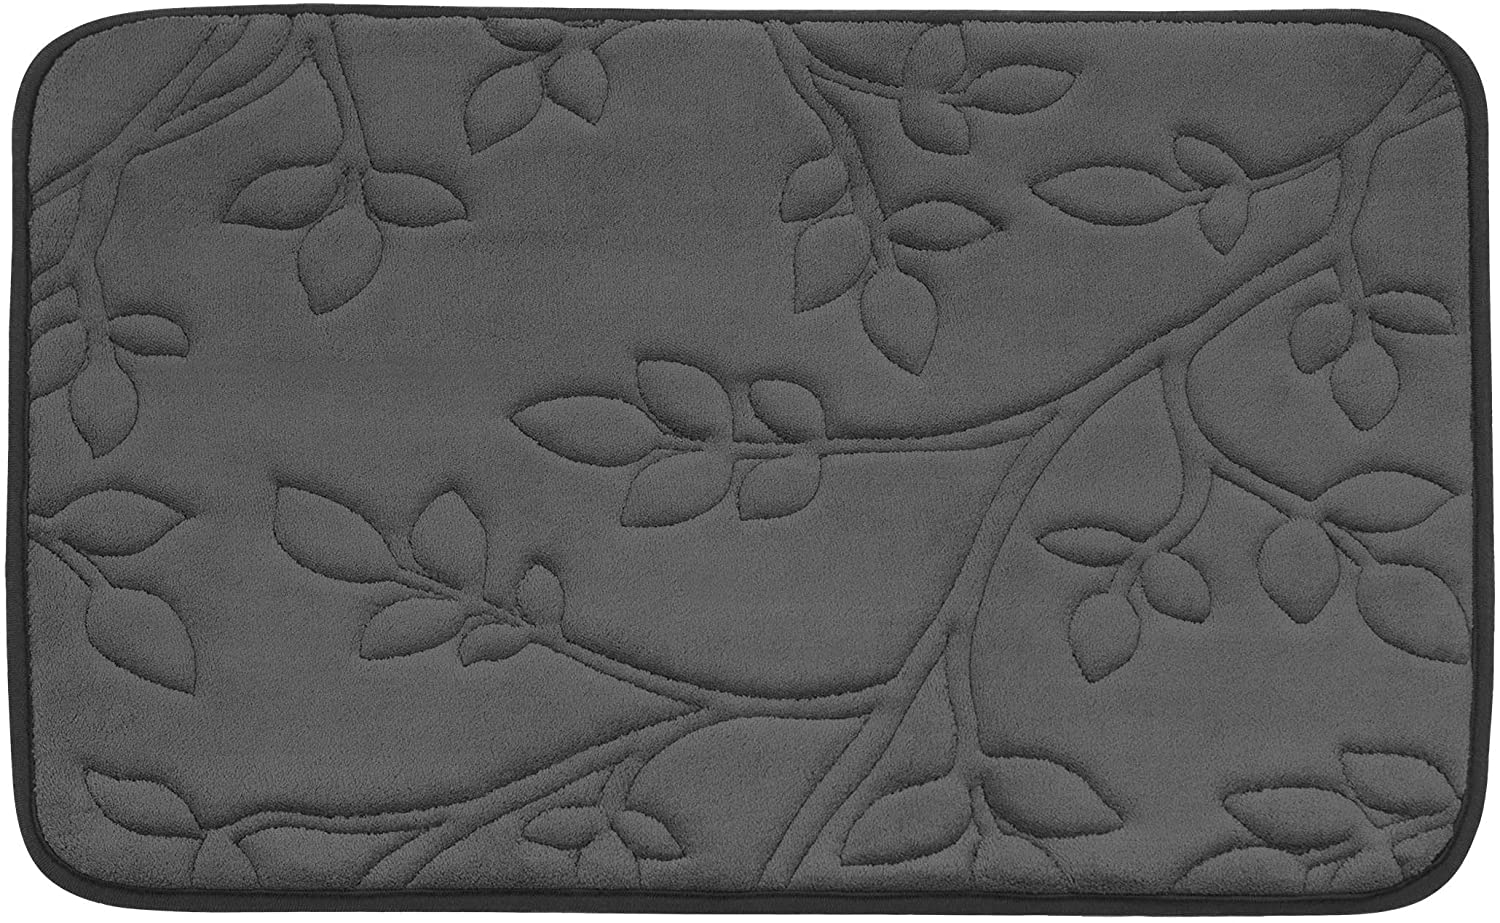 Bounce Comfort Spring Leaves Micro Plush Memory Foam Bath Mat with BounceComfort Technology, 20 x 30 in. Dark Grey